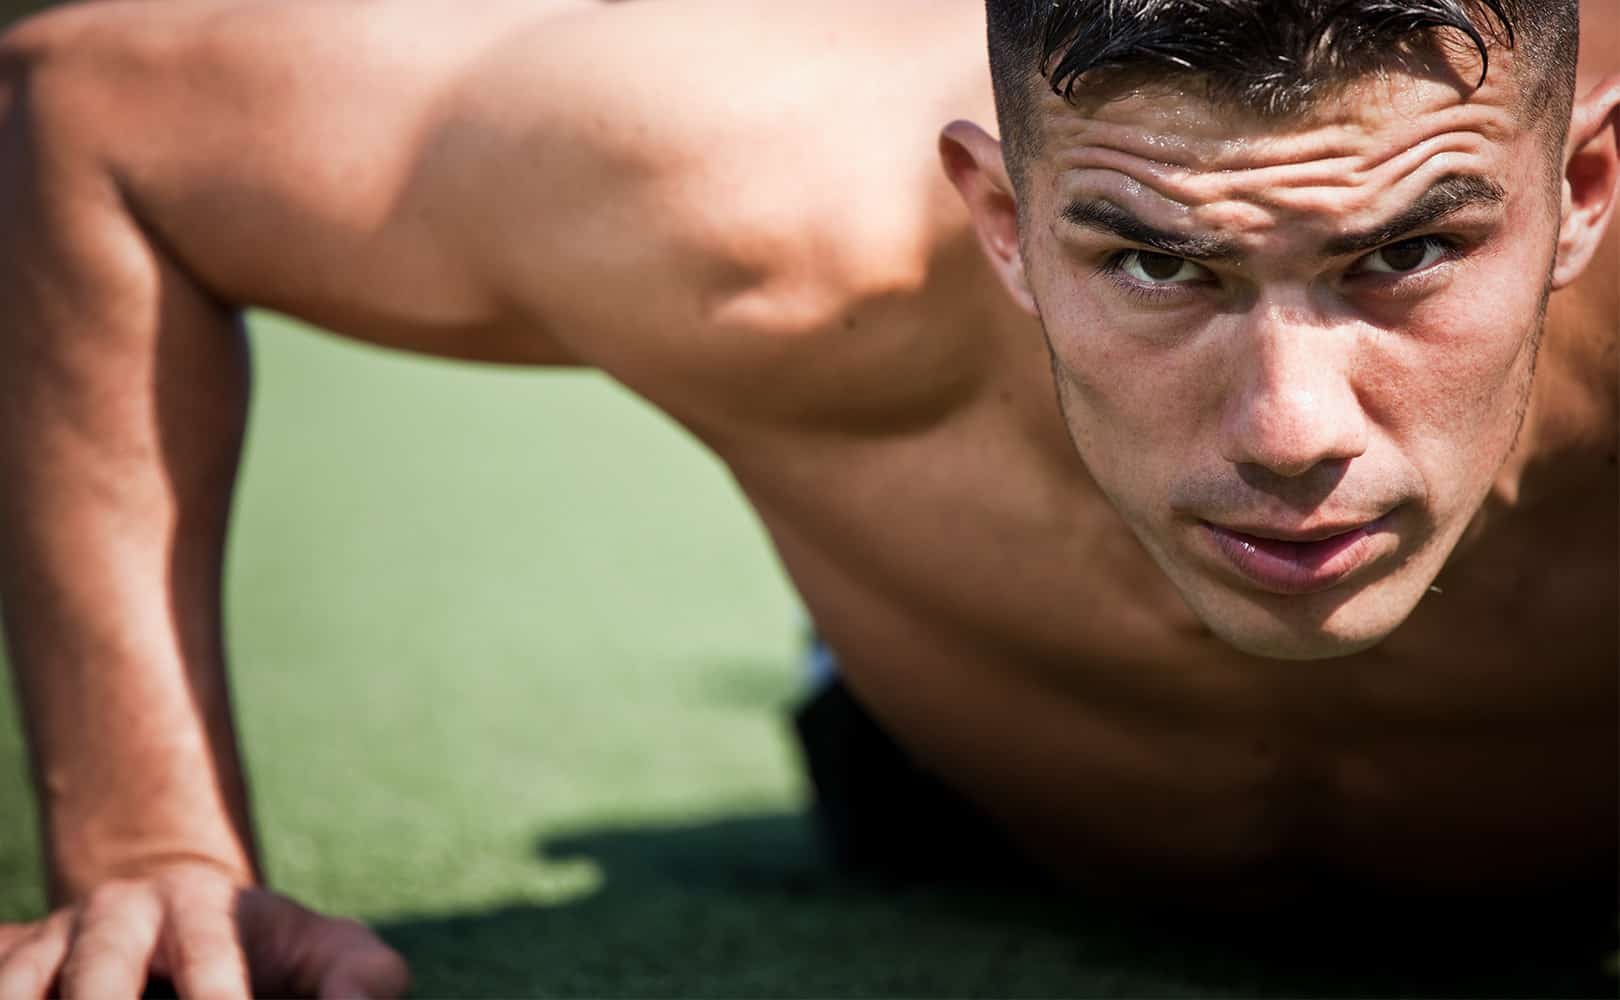 Man doing push-ups, on a quest to find out how to bulk up fast.